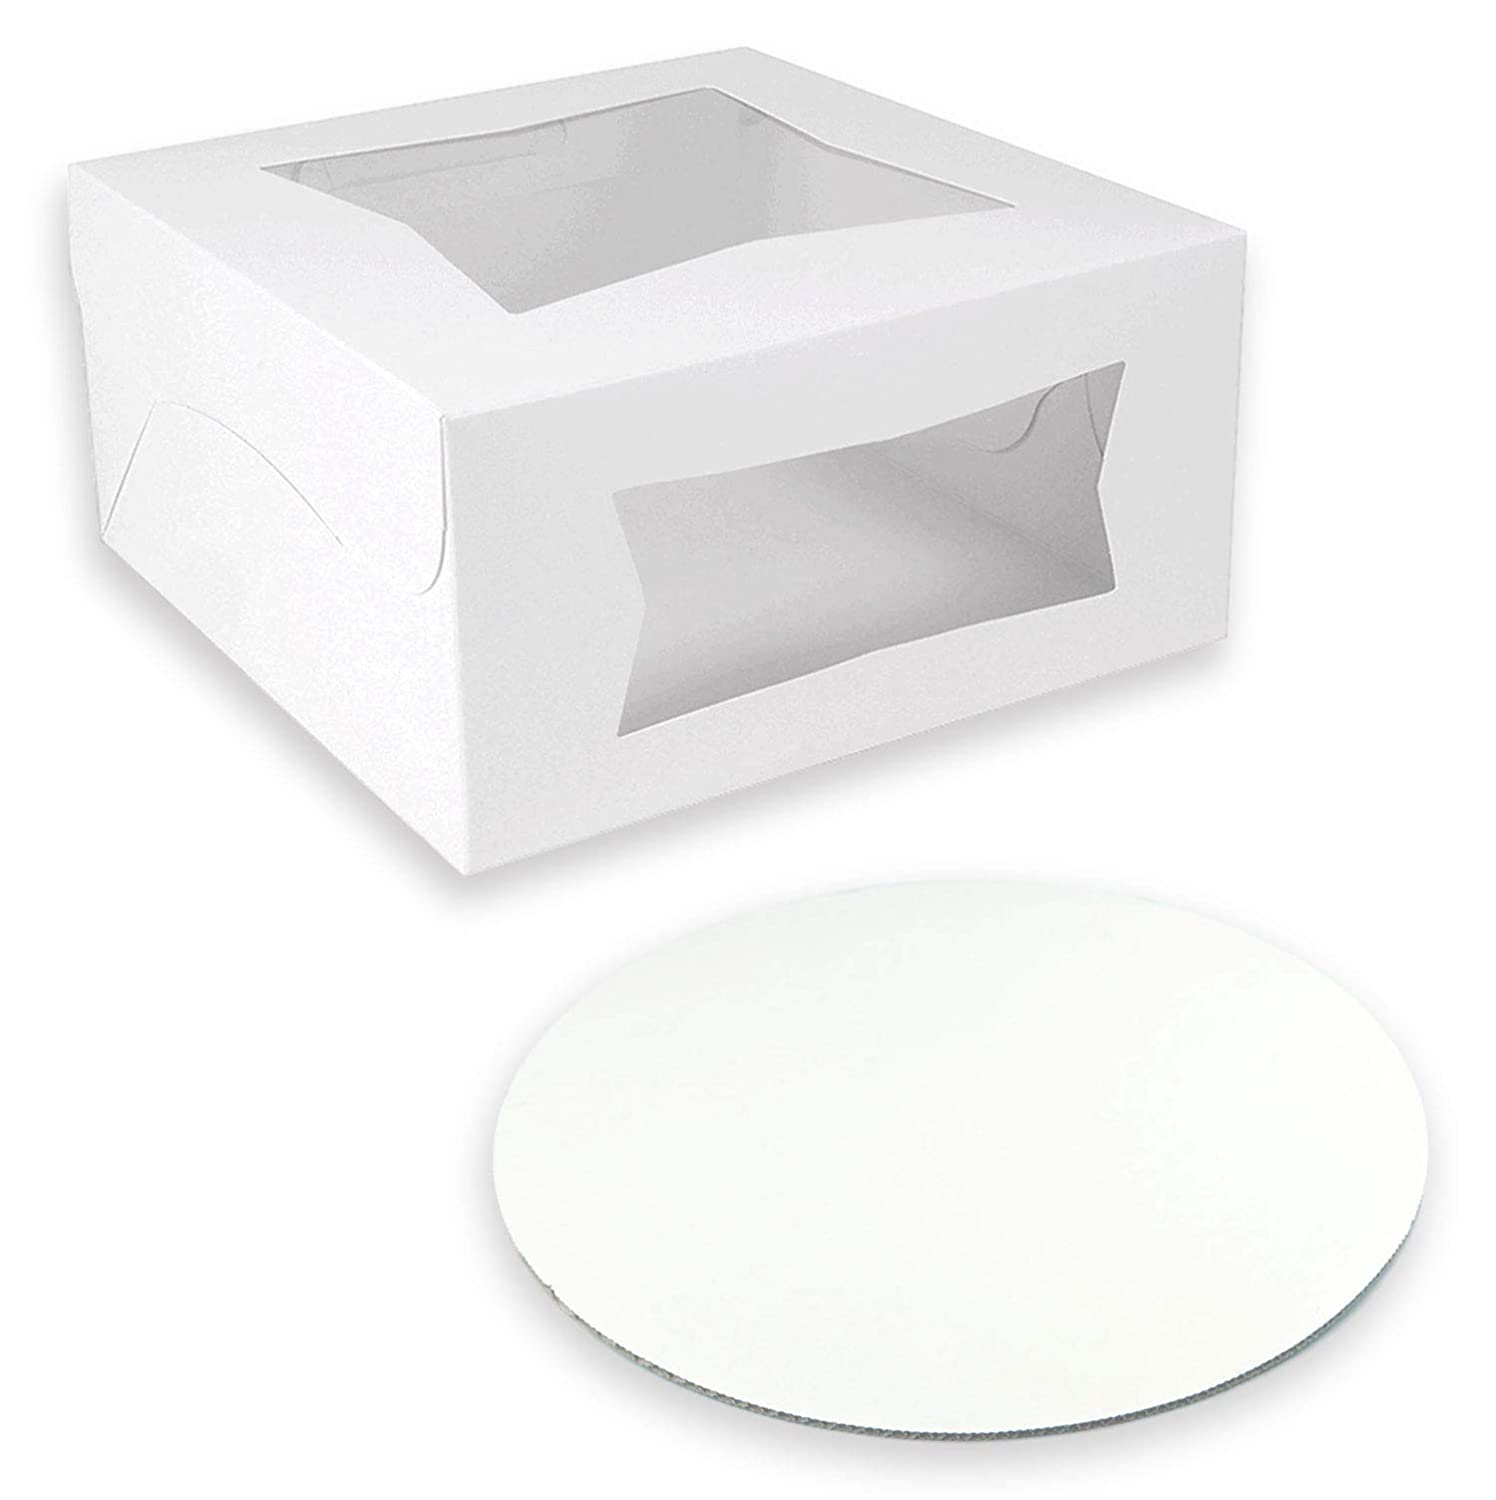 [25 Boxes and 25 Circles Pack] 8x8x4 White Pie/Cake Box with Window and 8 Inch Round Base Board - Cardboard Gift Packaging for Cupcake, Cookie and Pastry, Auto-Popup Restaurant and Bakery Containers